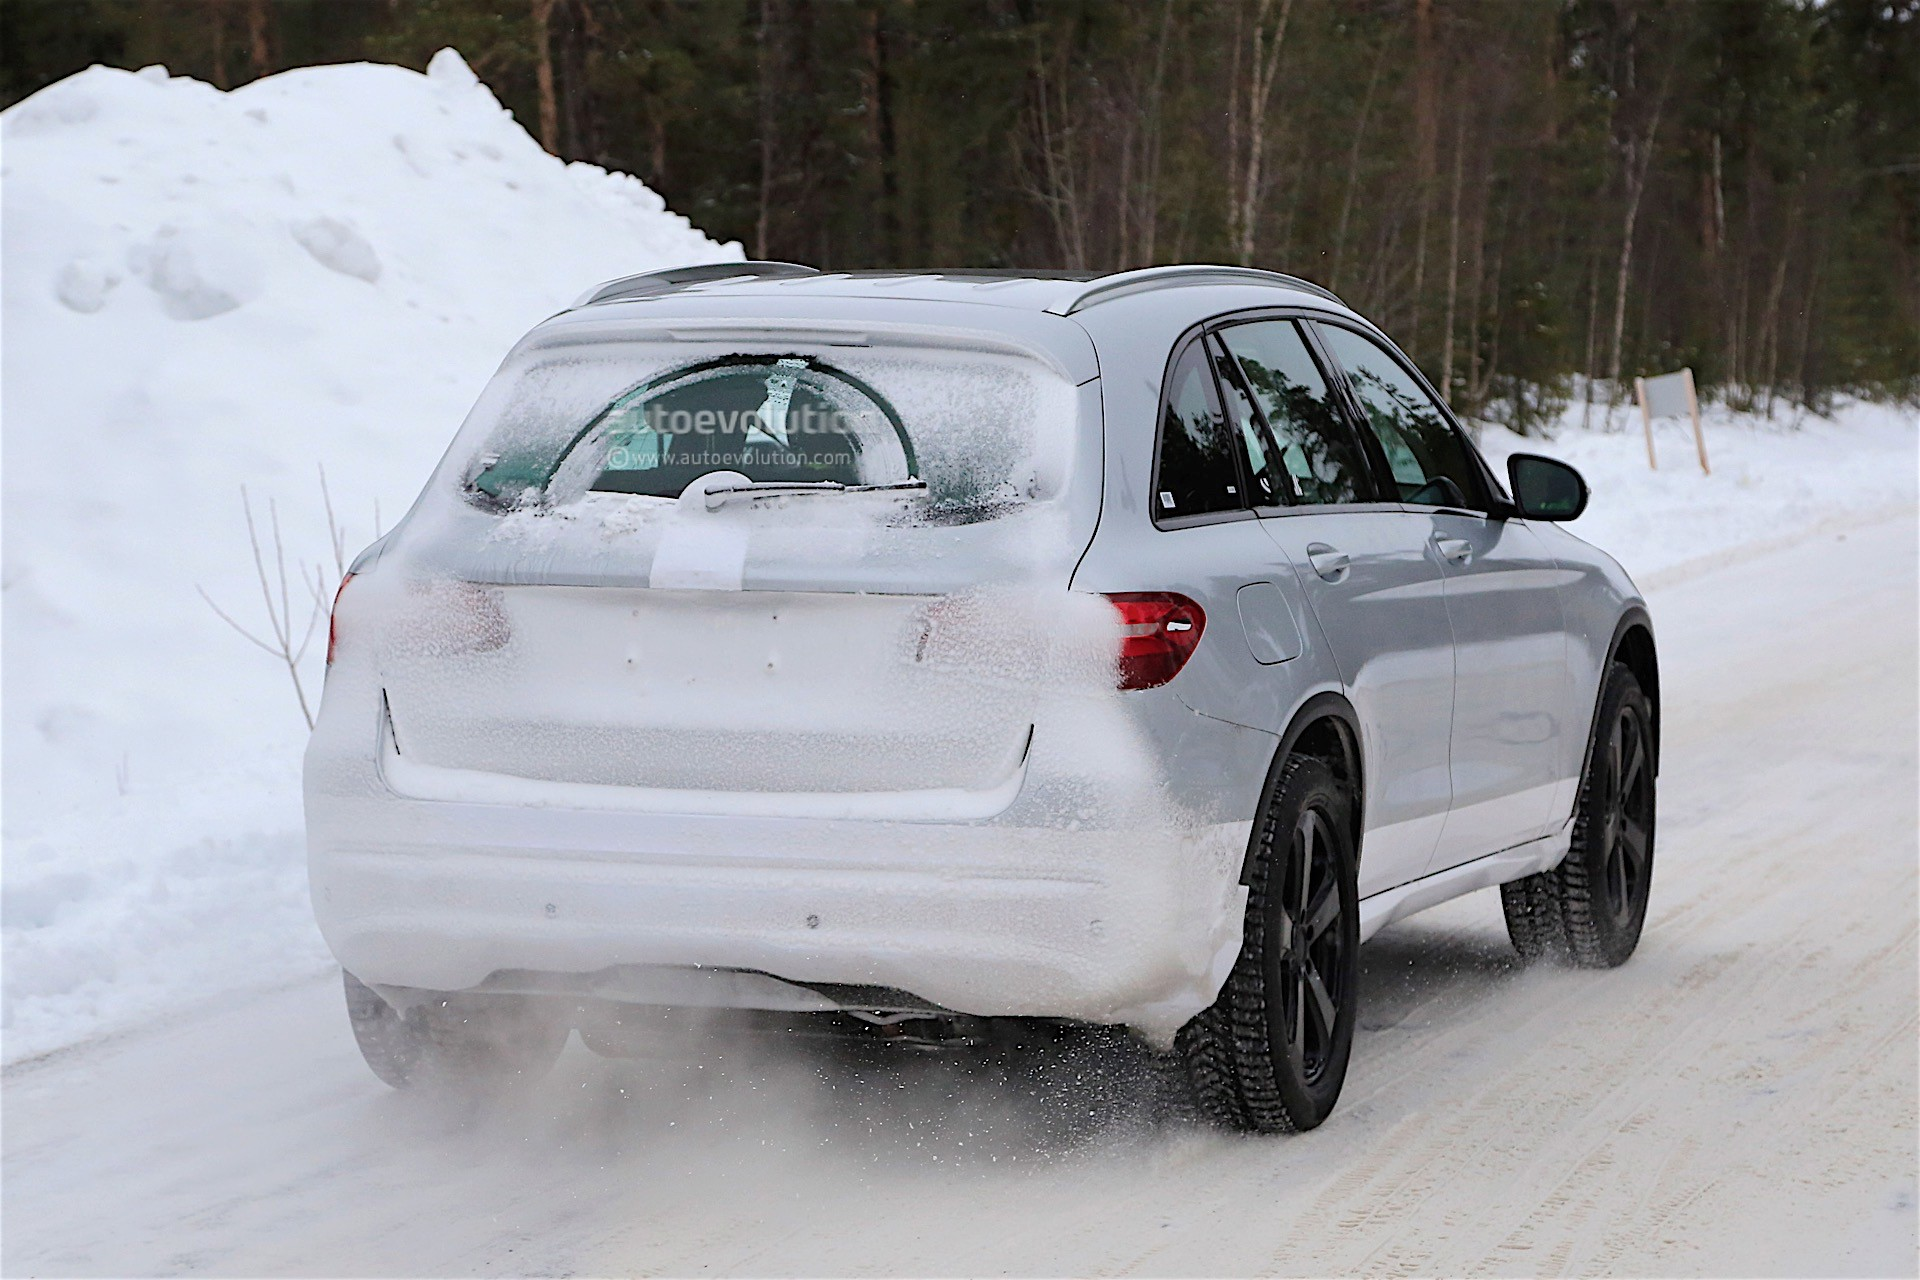 Mercedes-Benz Electric SUV Spied, Caught Testing With GLC Coupe Body ...